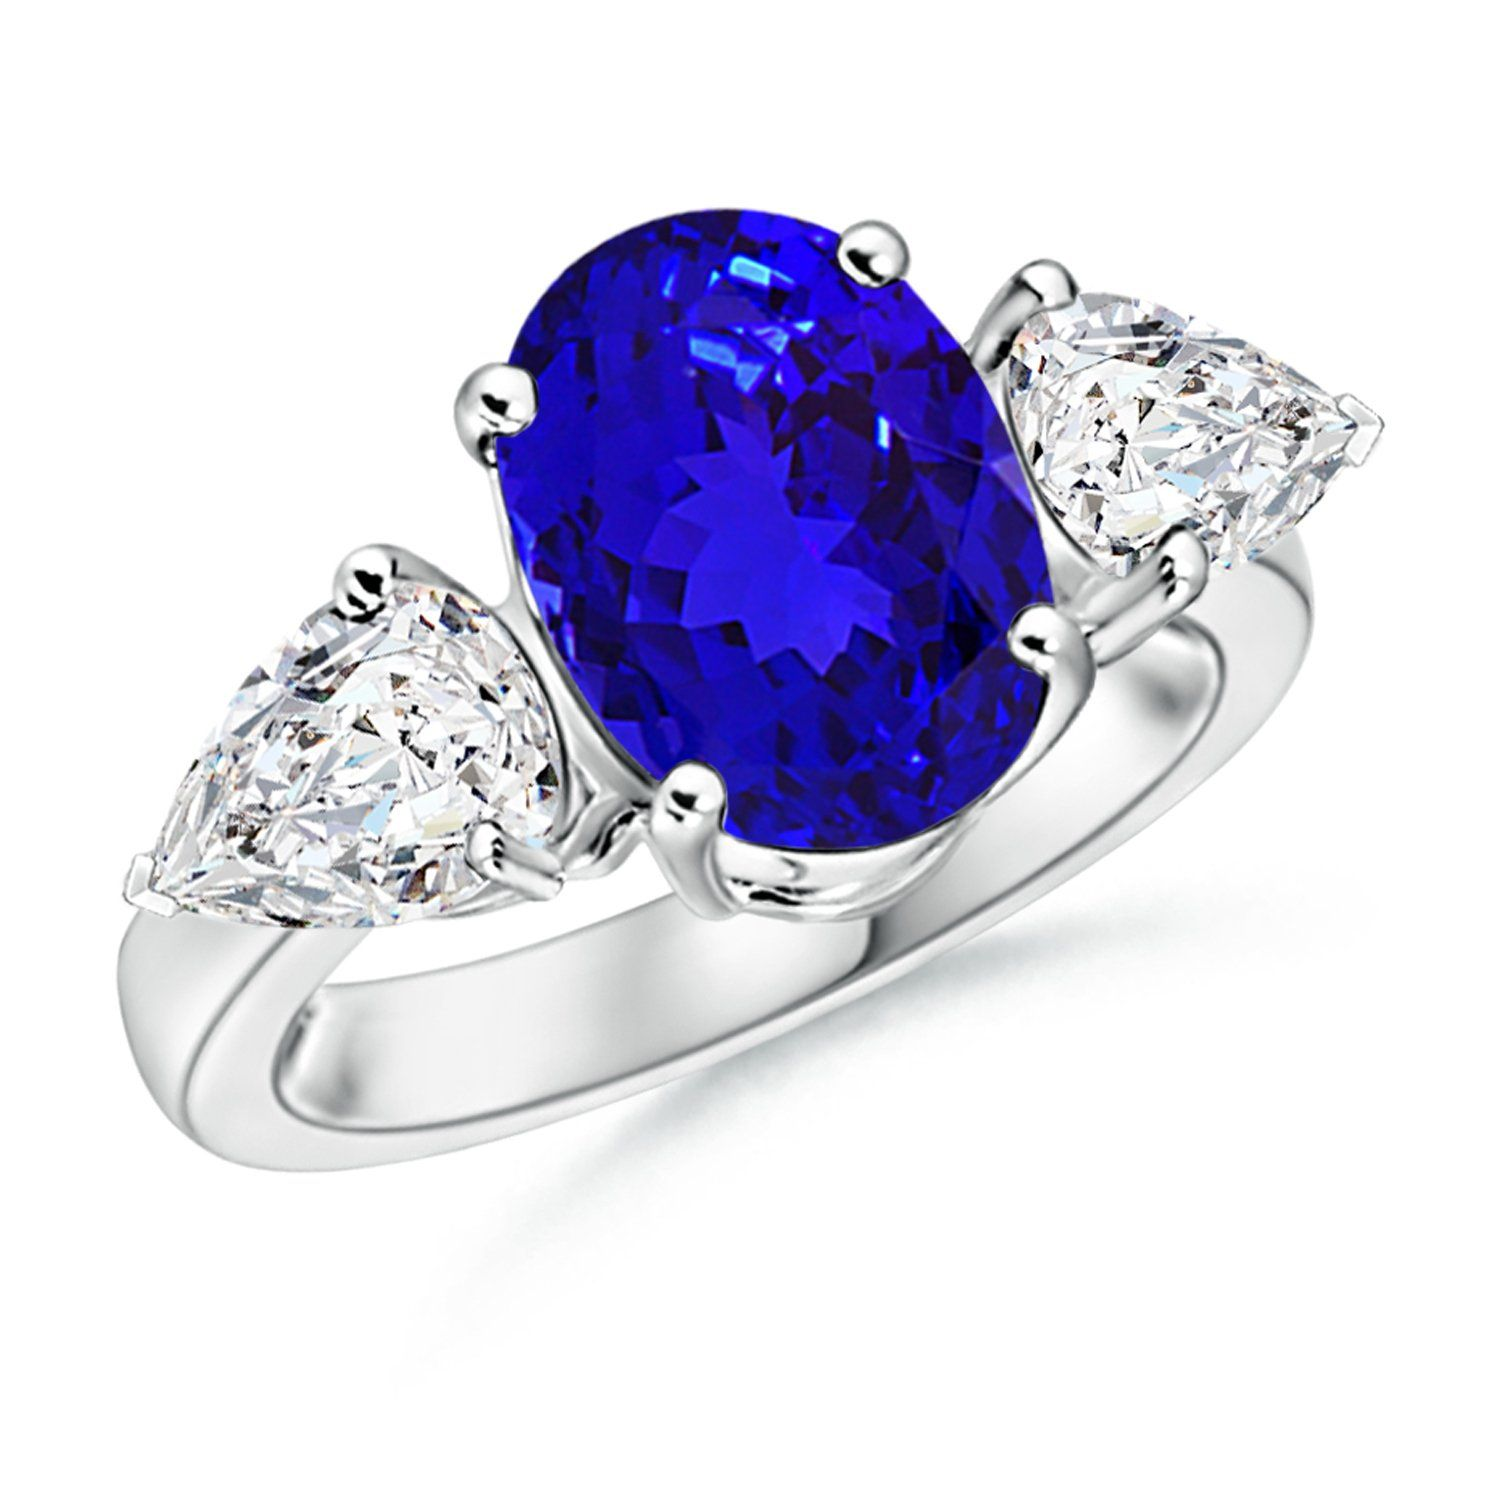 Angara Three Stone Oval Tanzanite and Diamond Ring in Platinum Iw9lVtLaJo